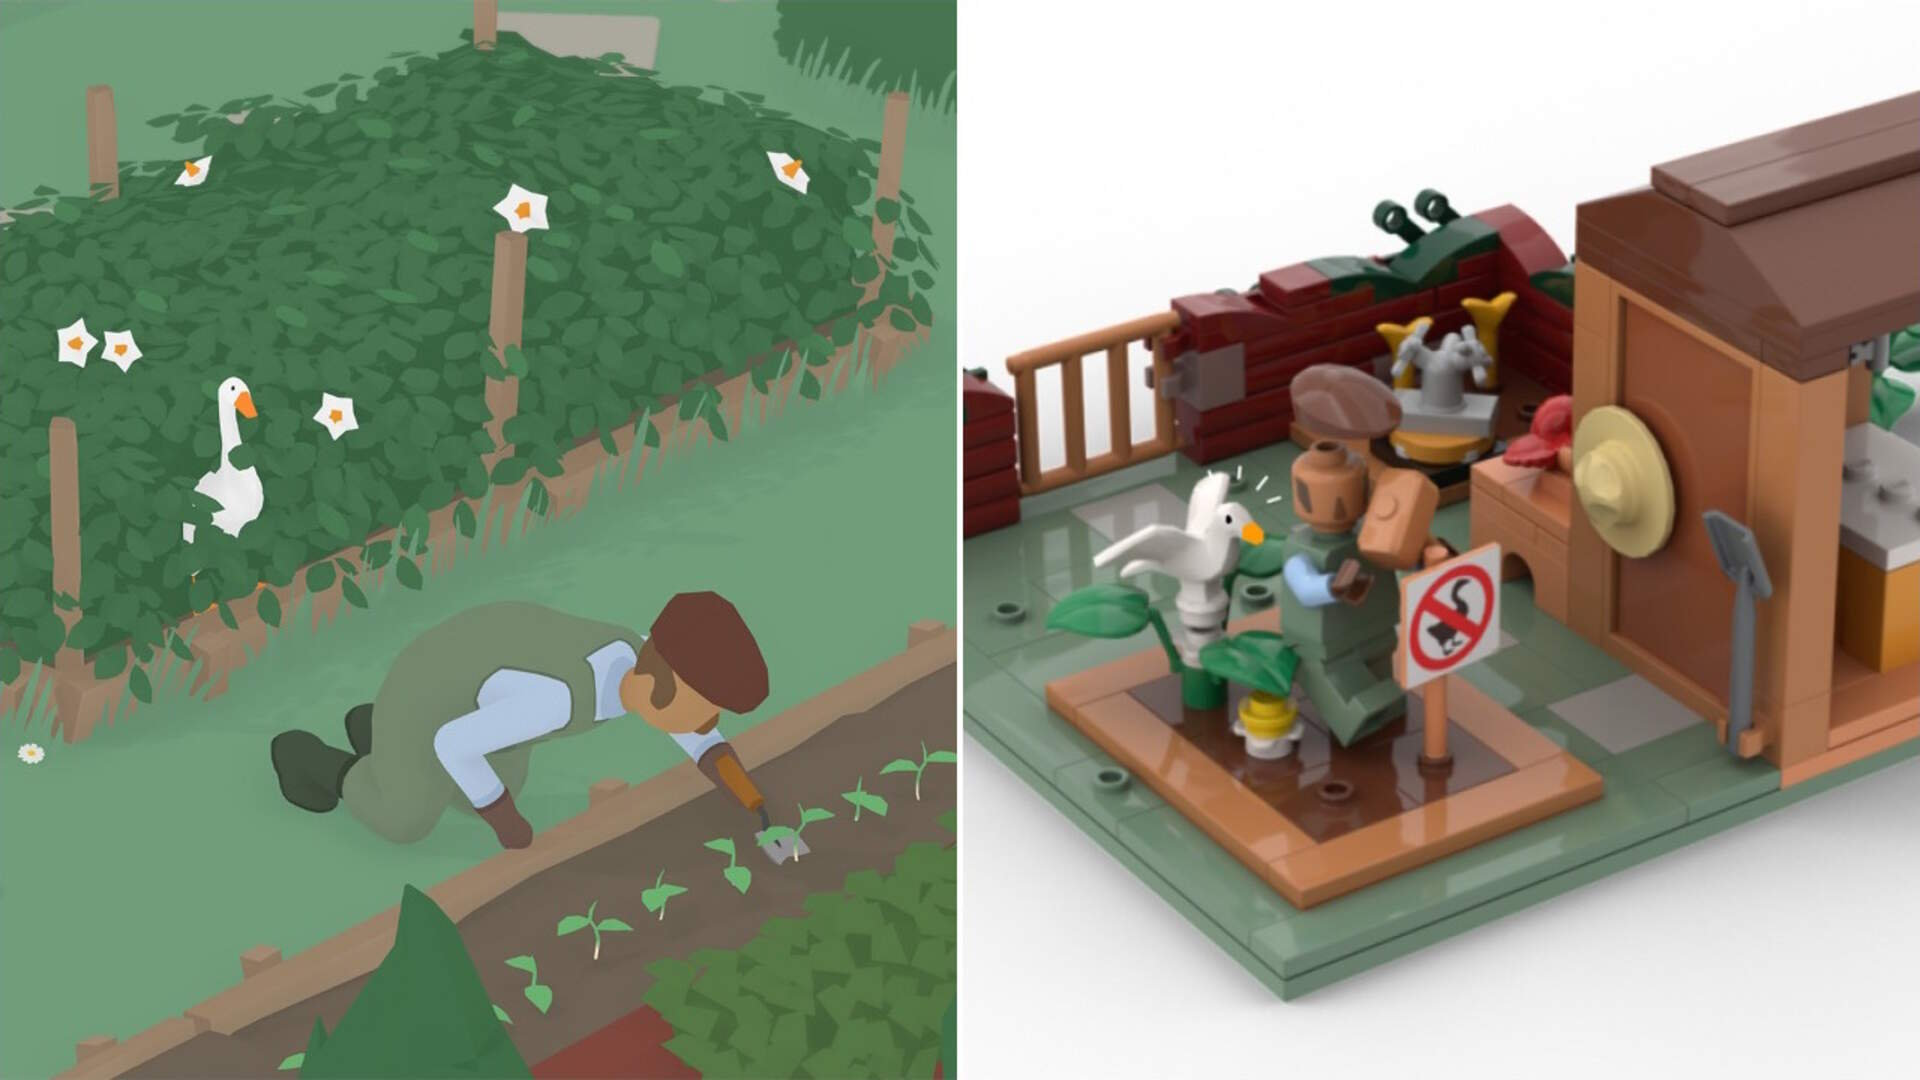 Untitled Goose Game Has a Real Shot at Getting an Official Lego Set